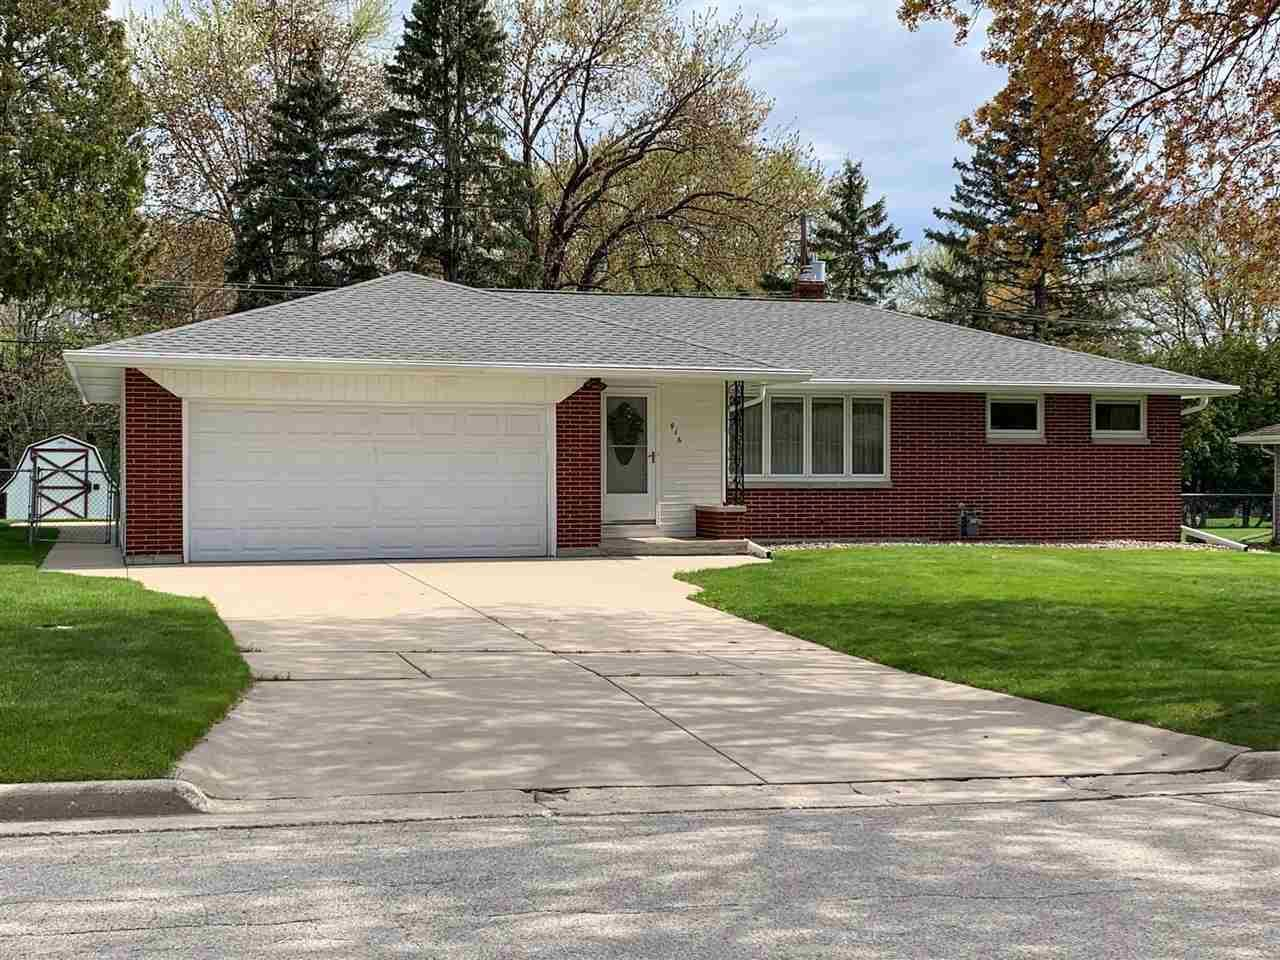 916 WATERMOLEN Avenue, Green Bay, WI 54304 - MLS#: 50239511